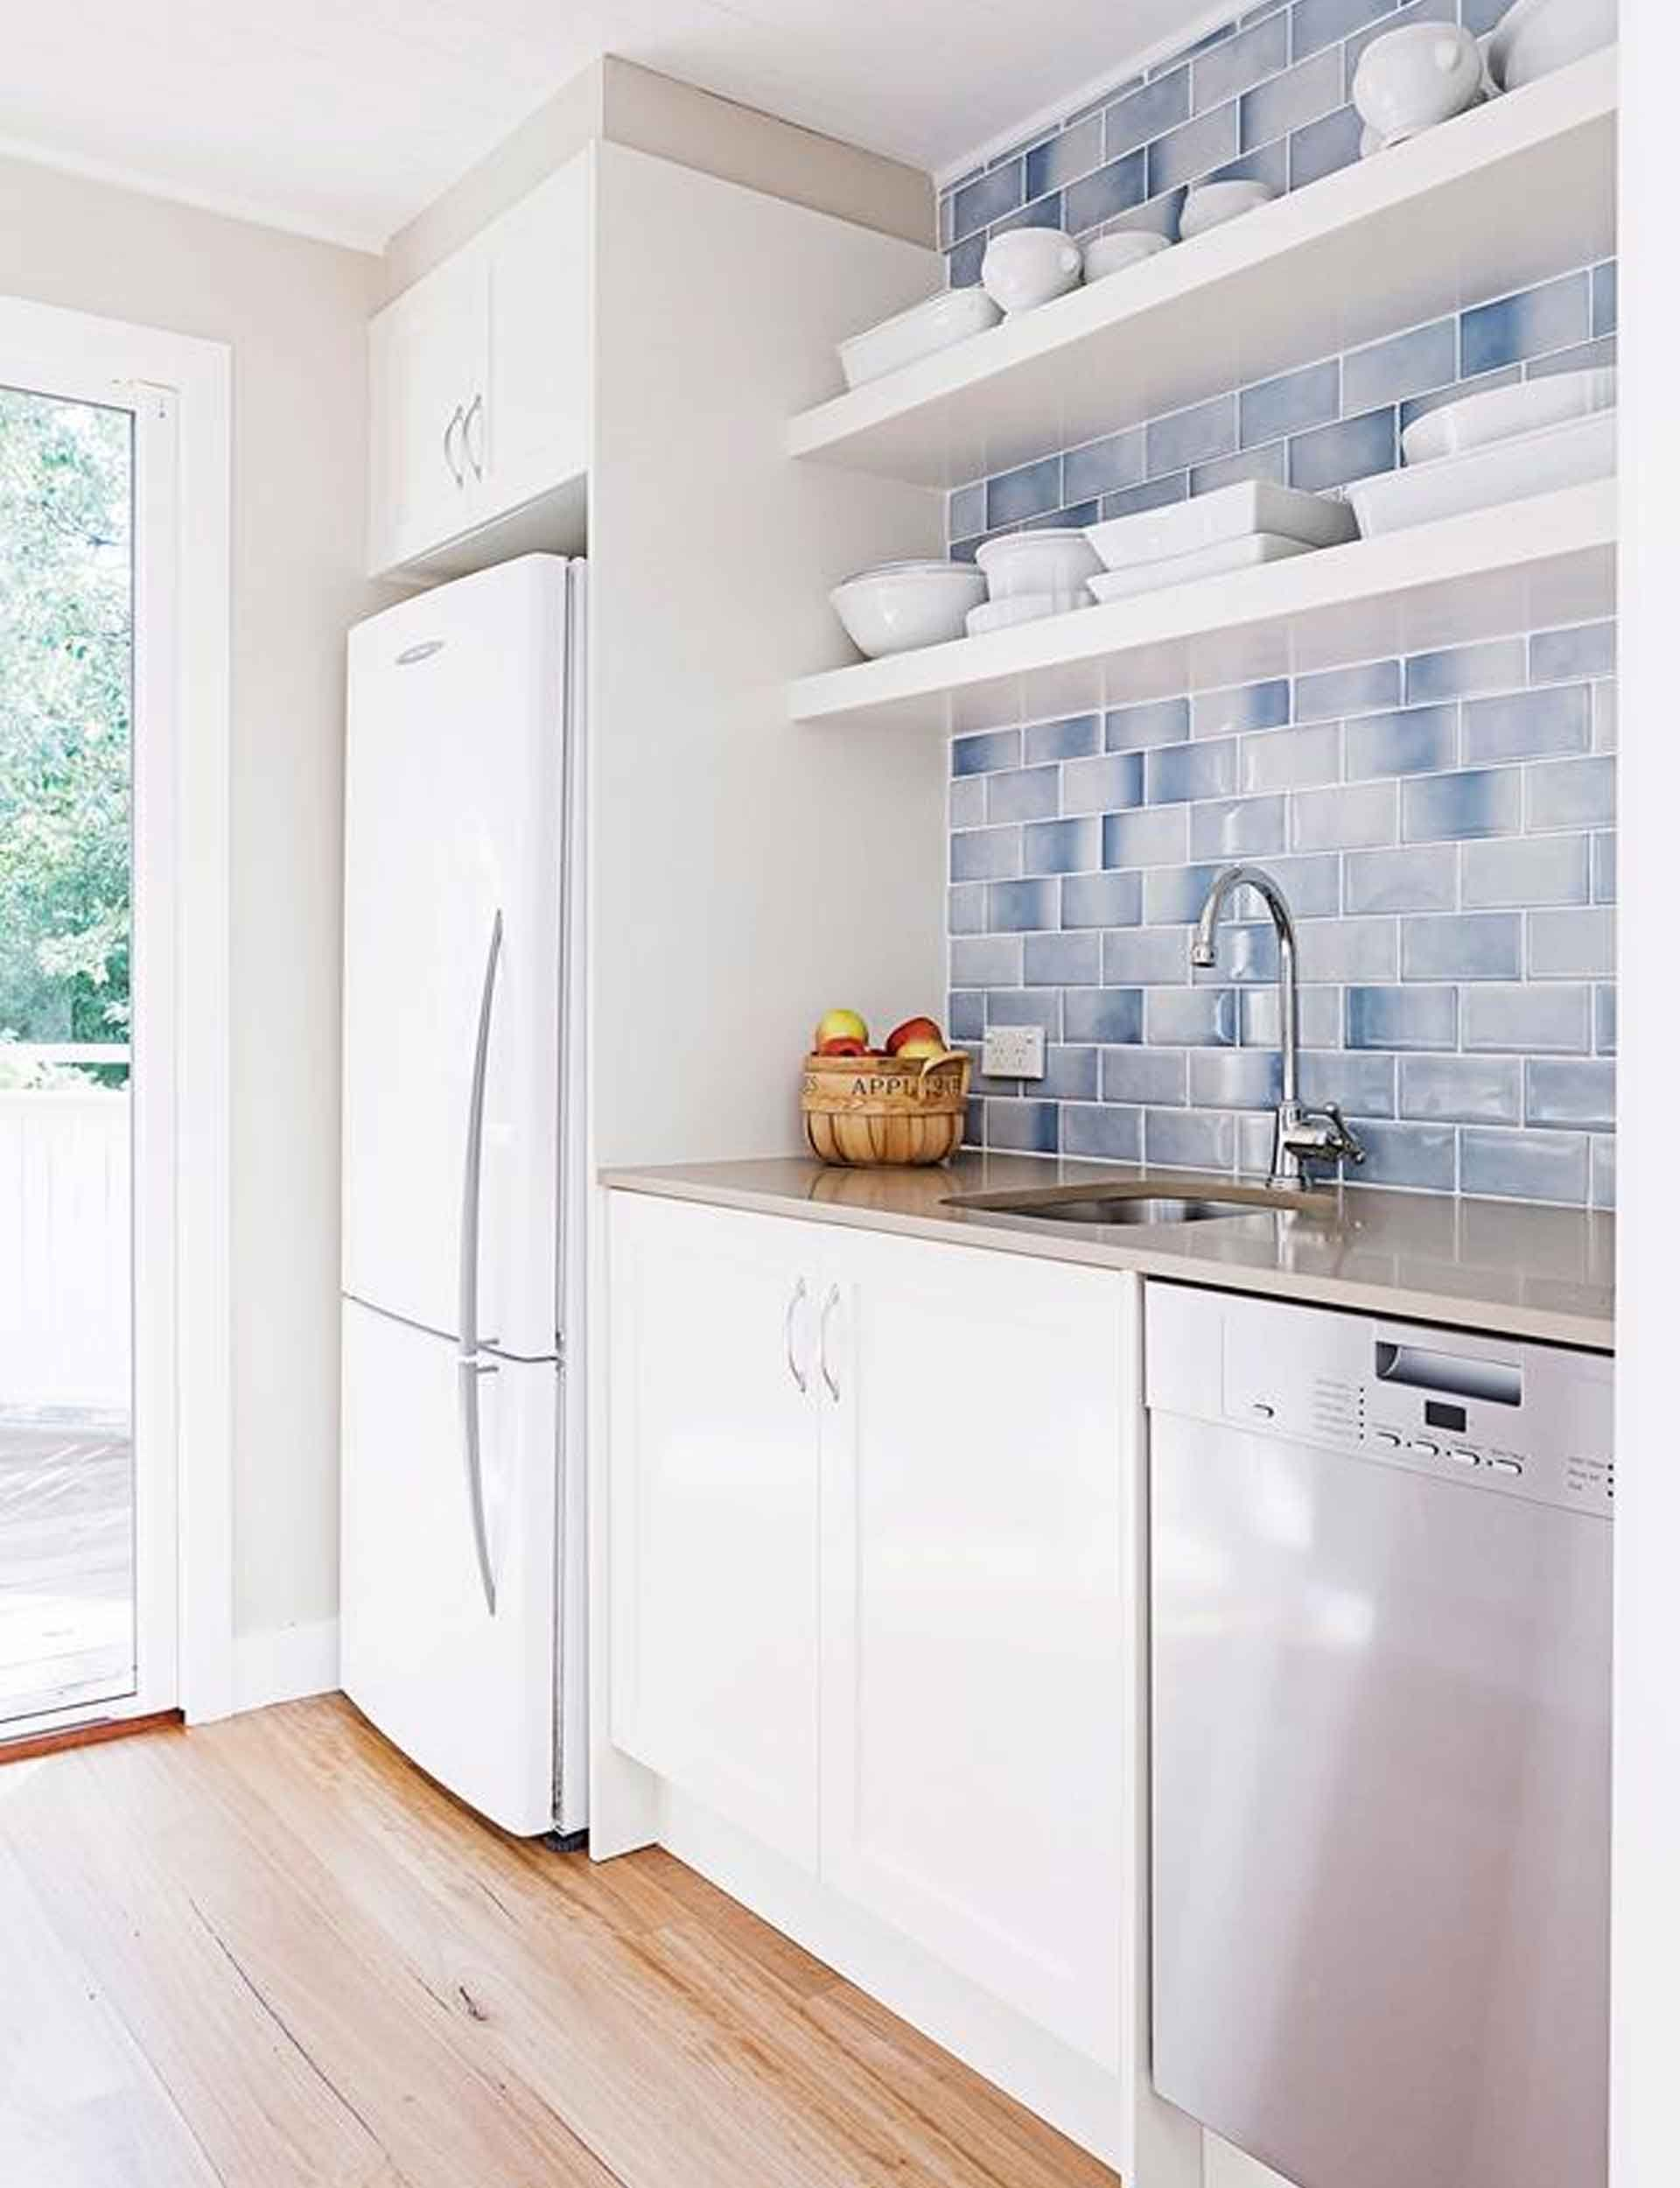 How To Remove Mould And Mildew According To The Experts Mold Remover Washing Machine In Kitchen Kitchen Cabinets In Bathroom